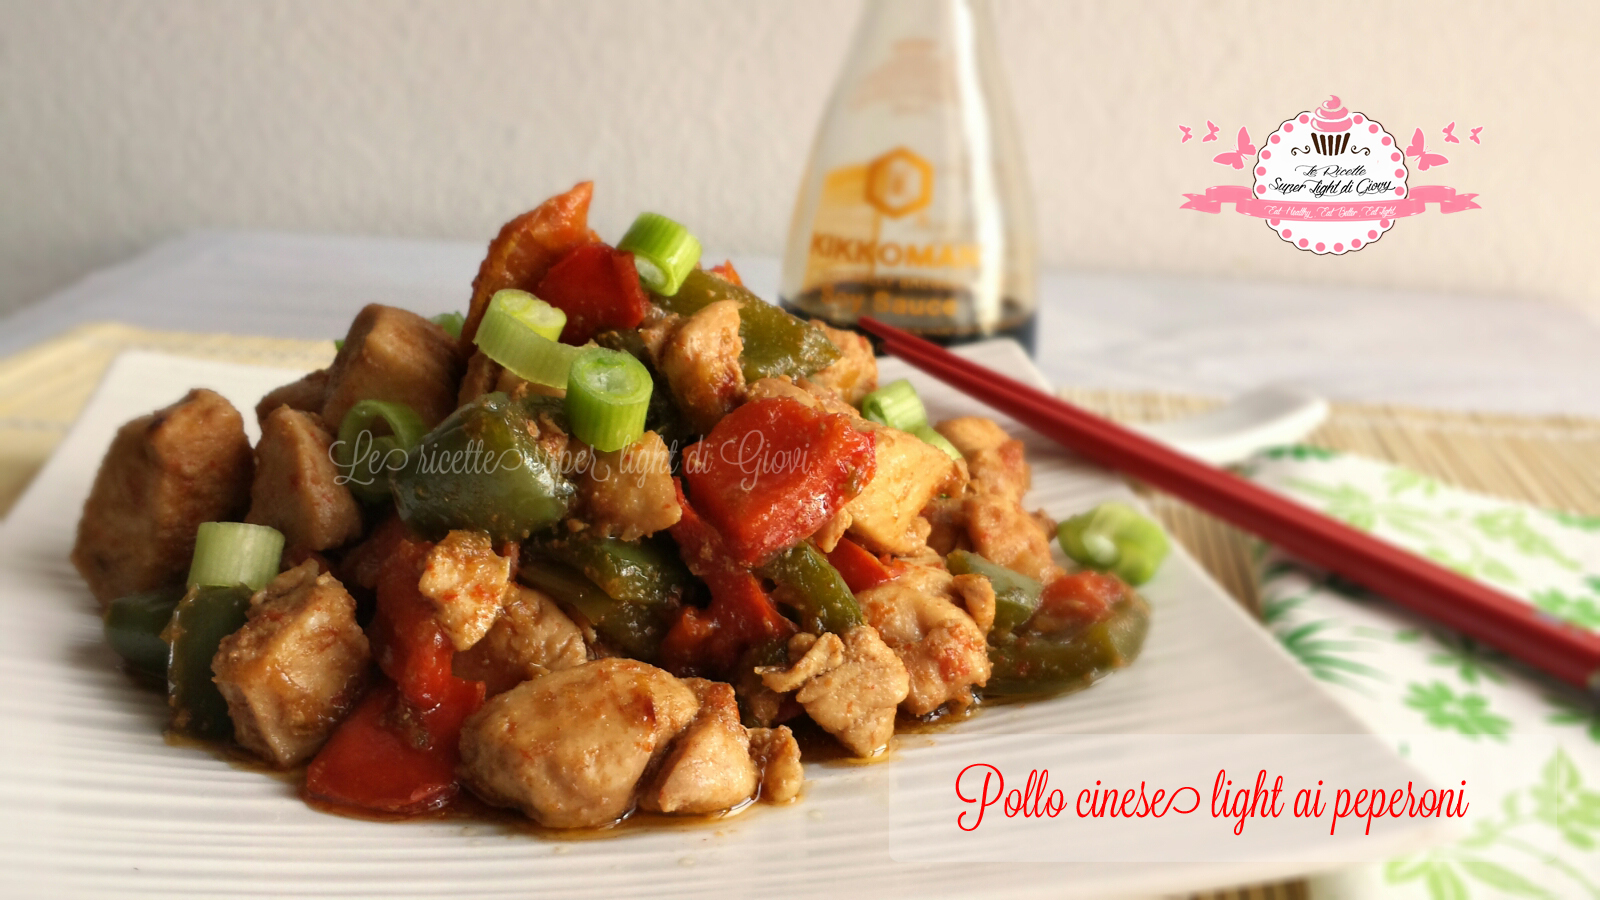 Pollo cinese light ai peperoni (250 calorie)